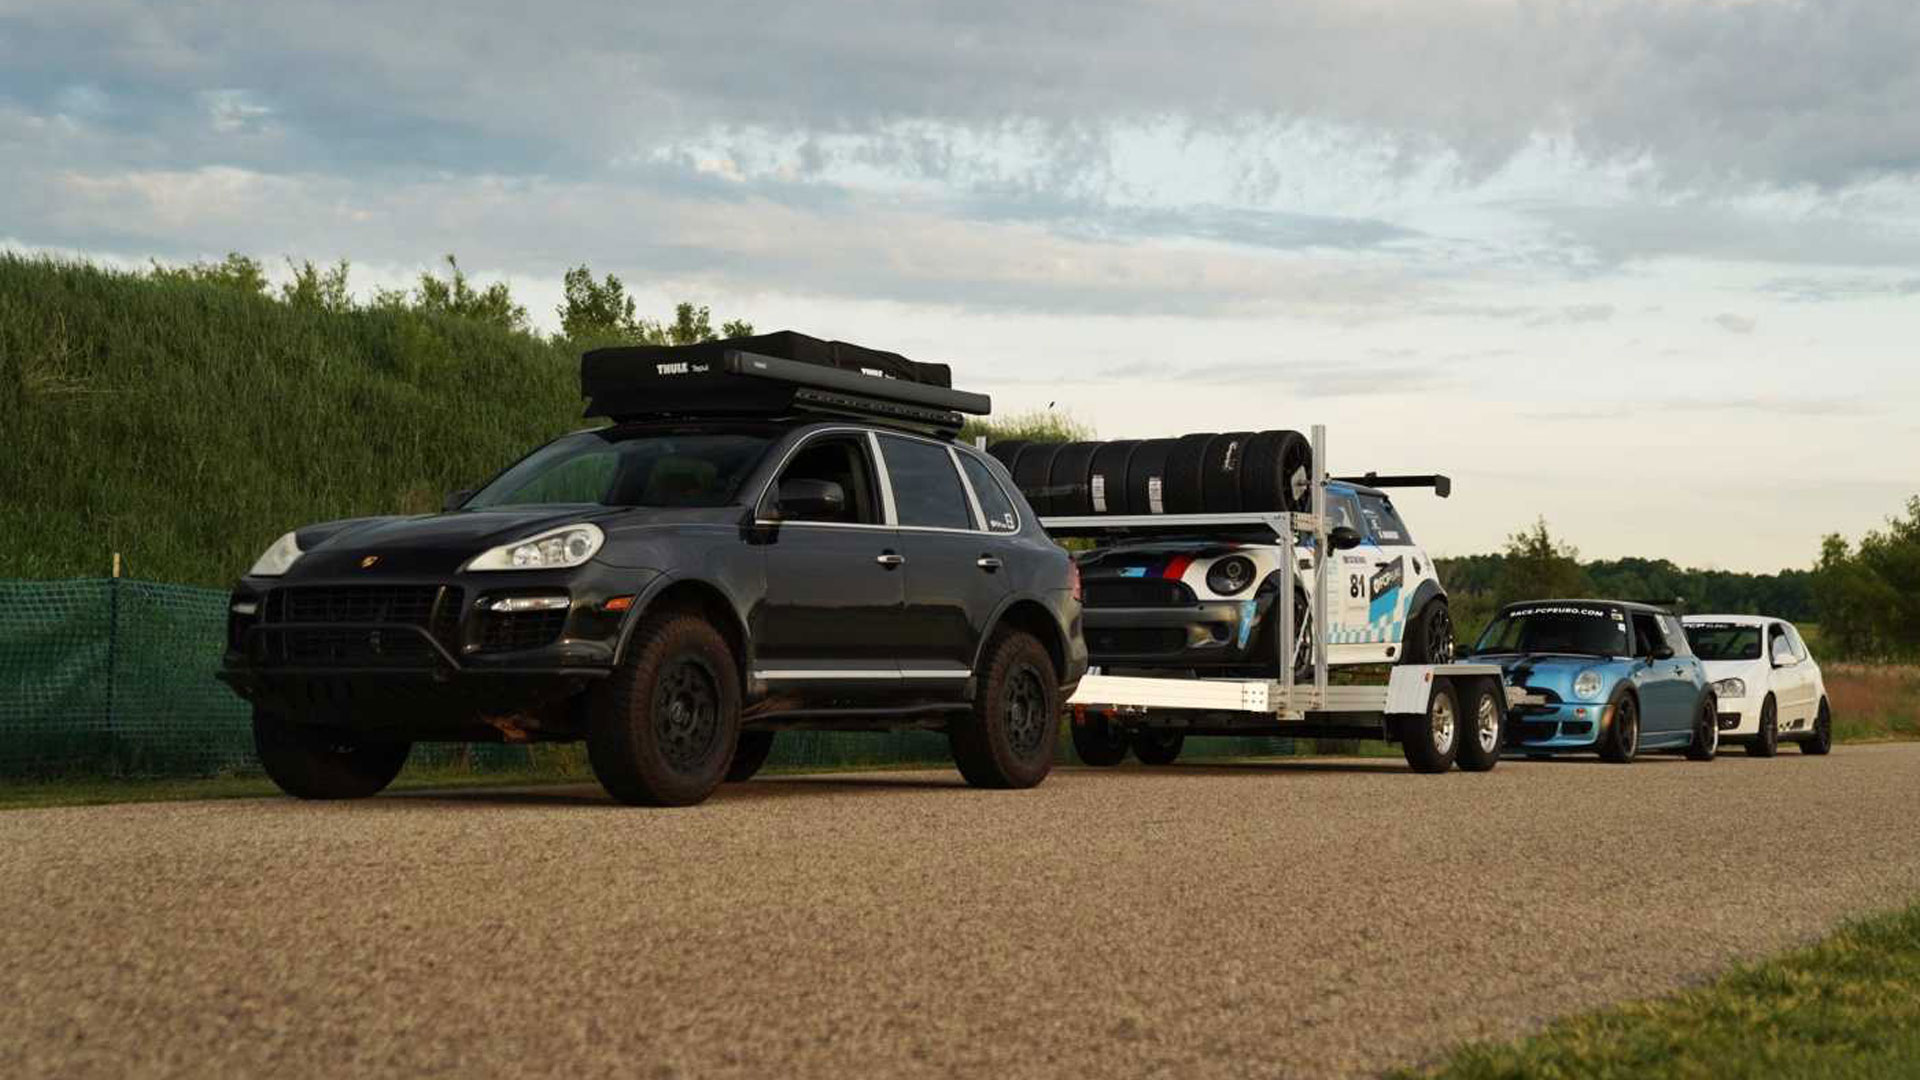 Used & European: The Best SUVs For Towing